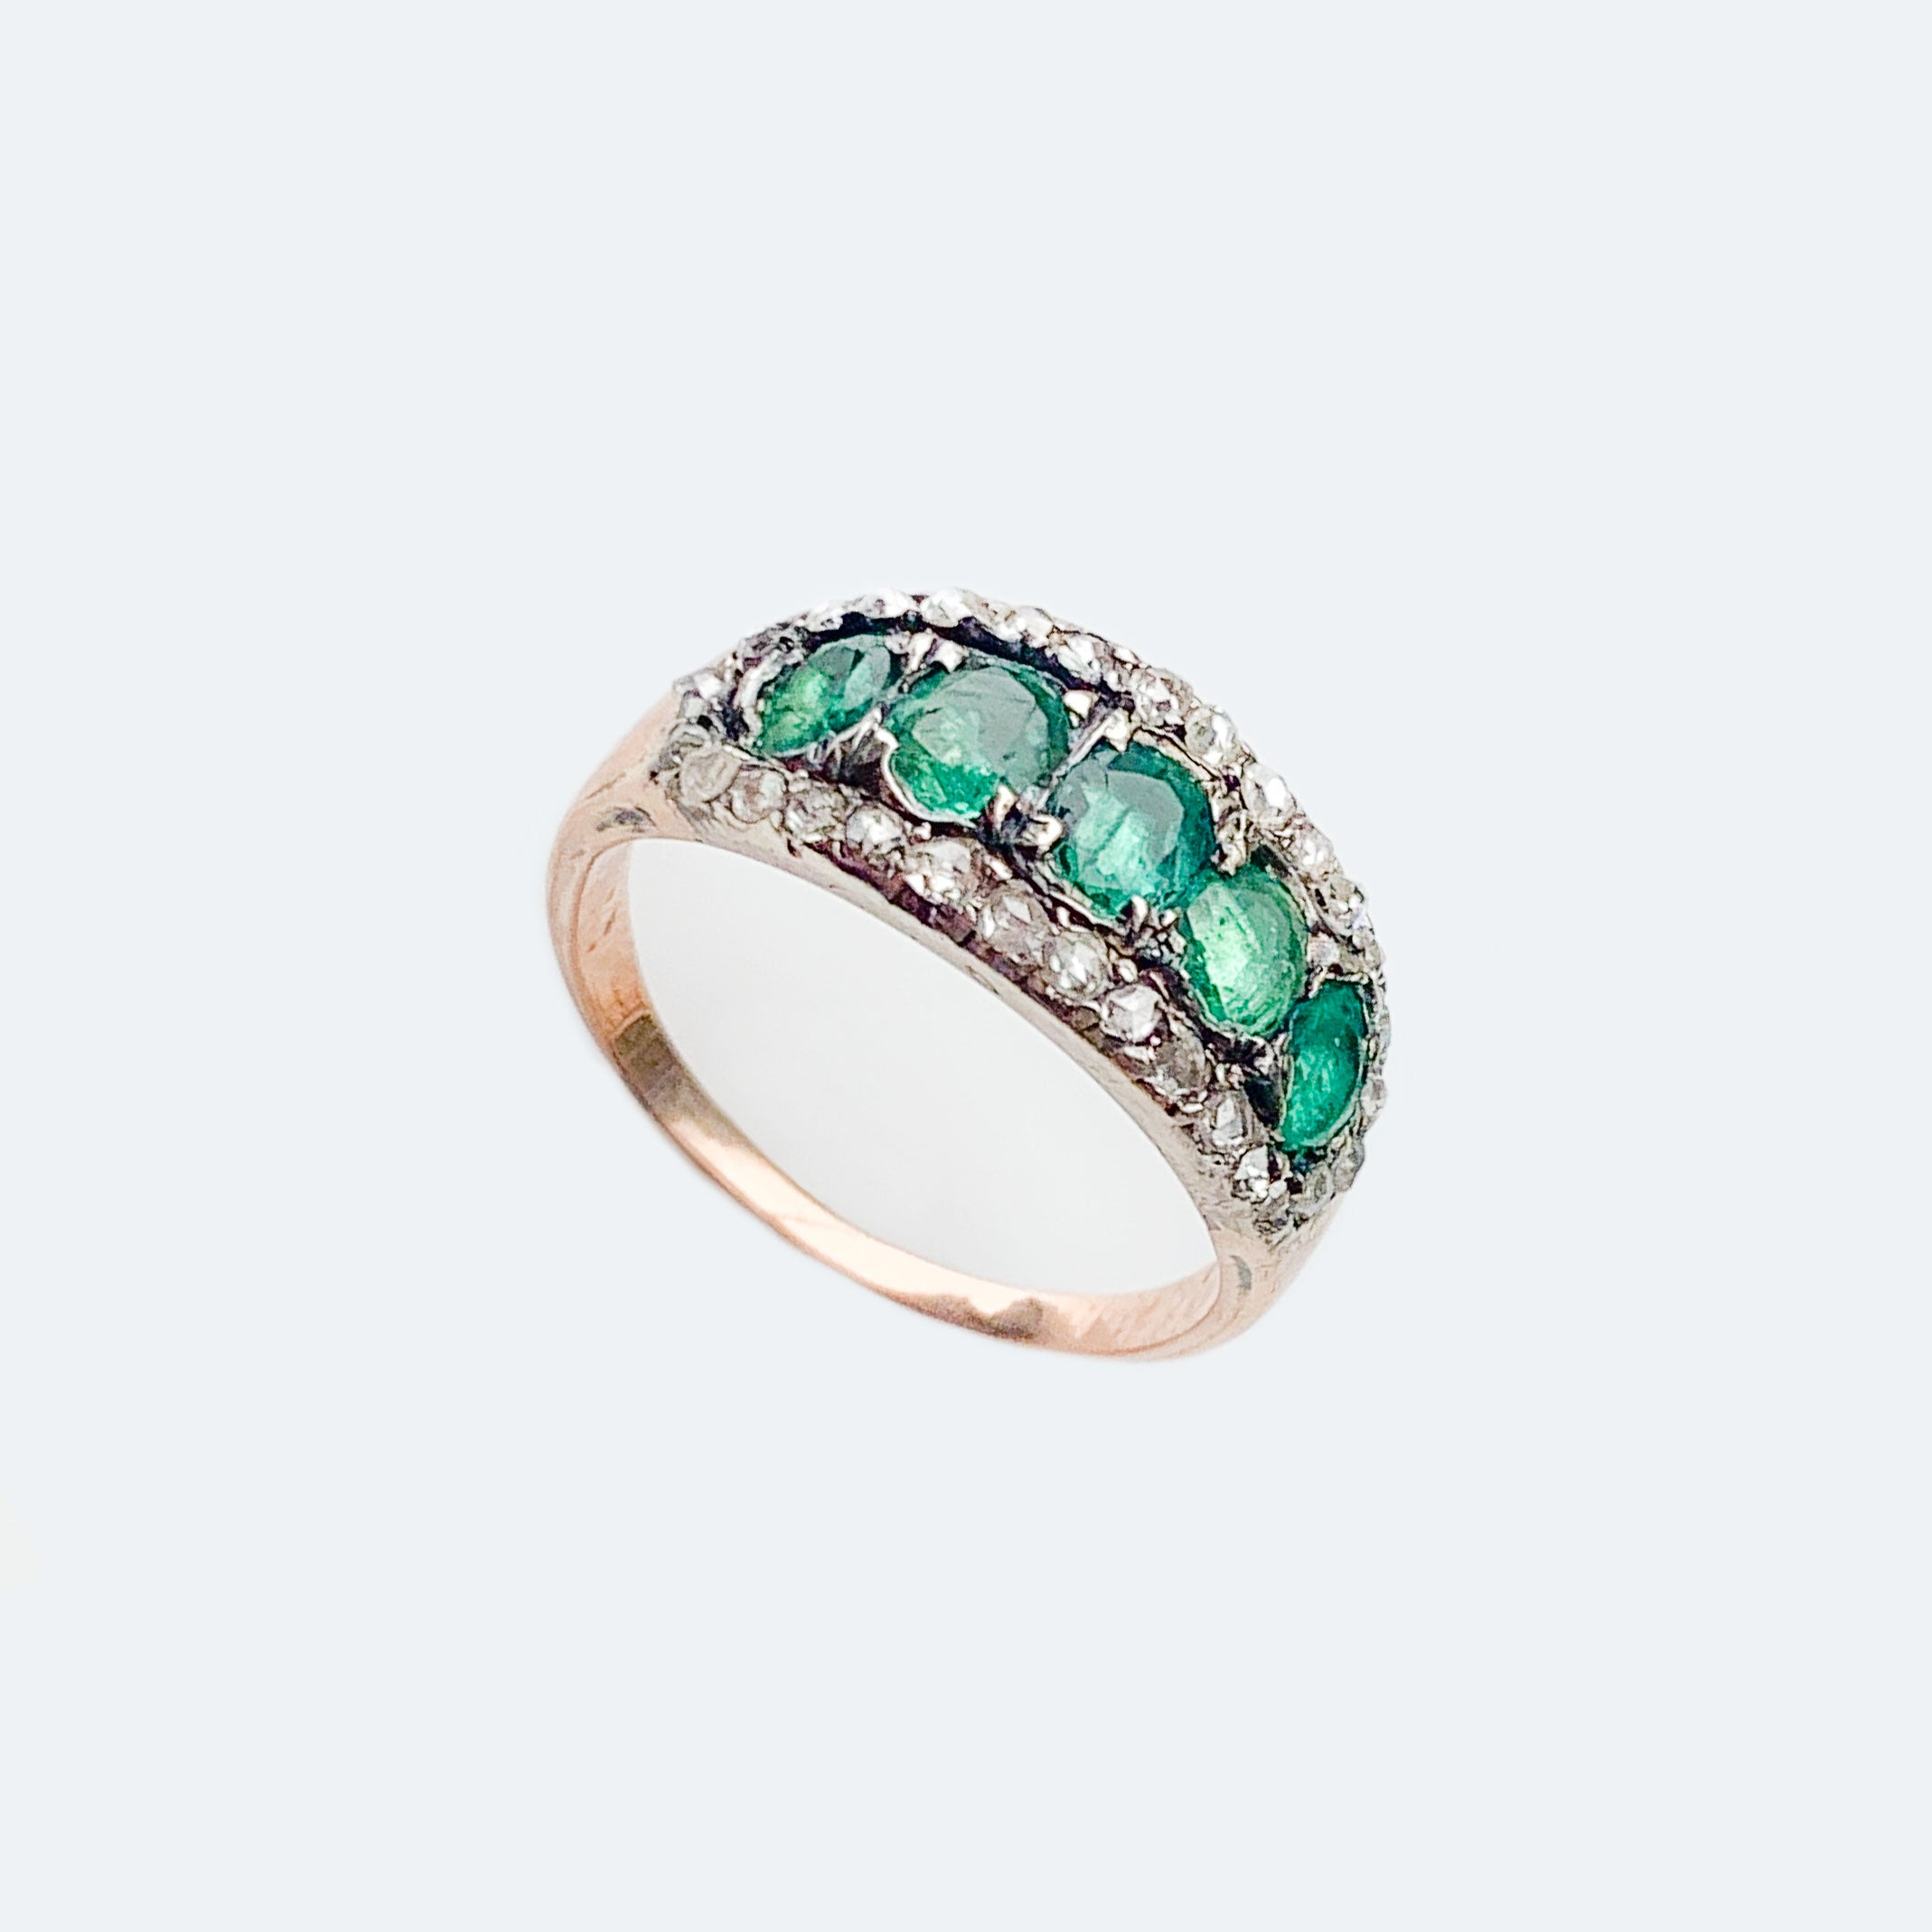 Georgian 5 stone emerald 18ct gold ring surrounded by old cut diamonds